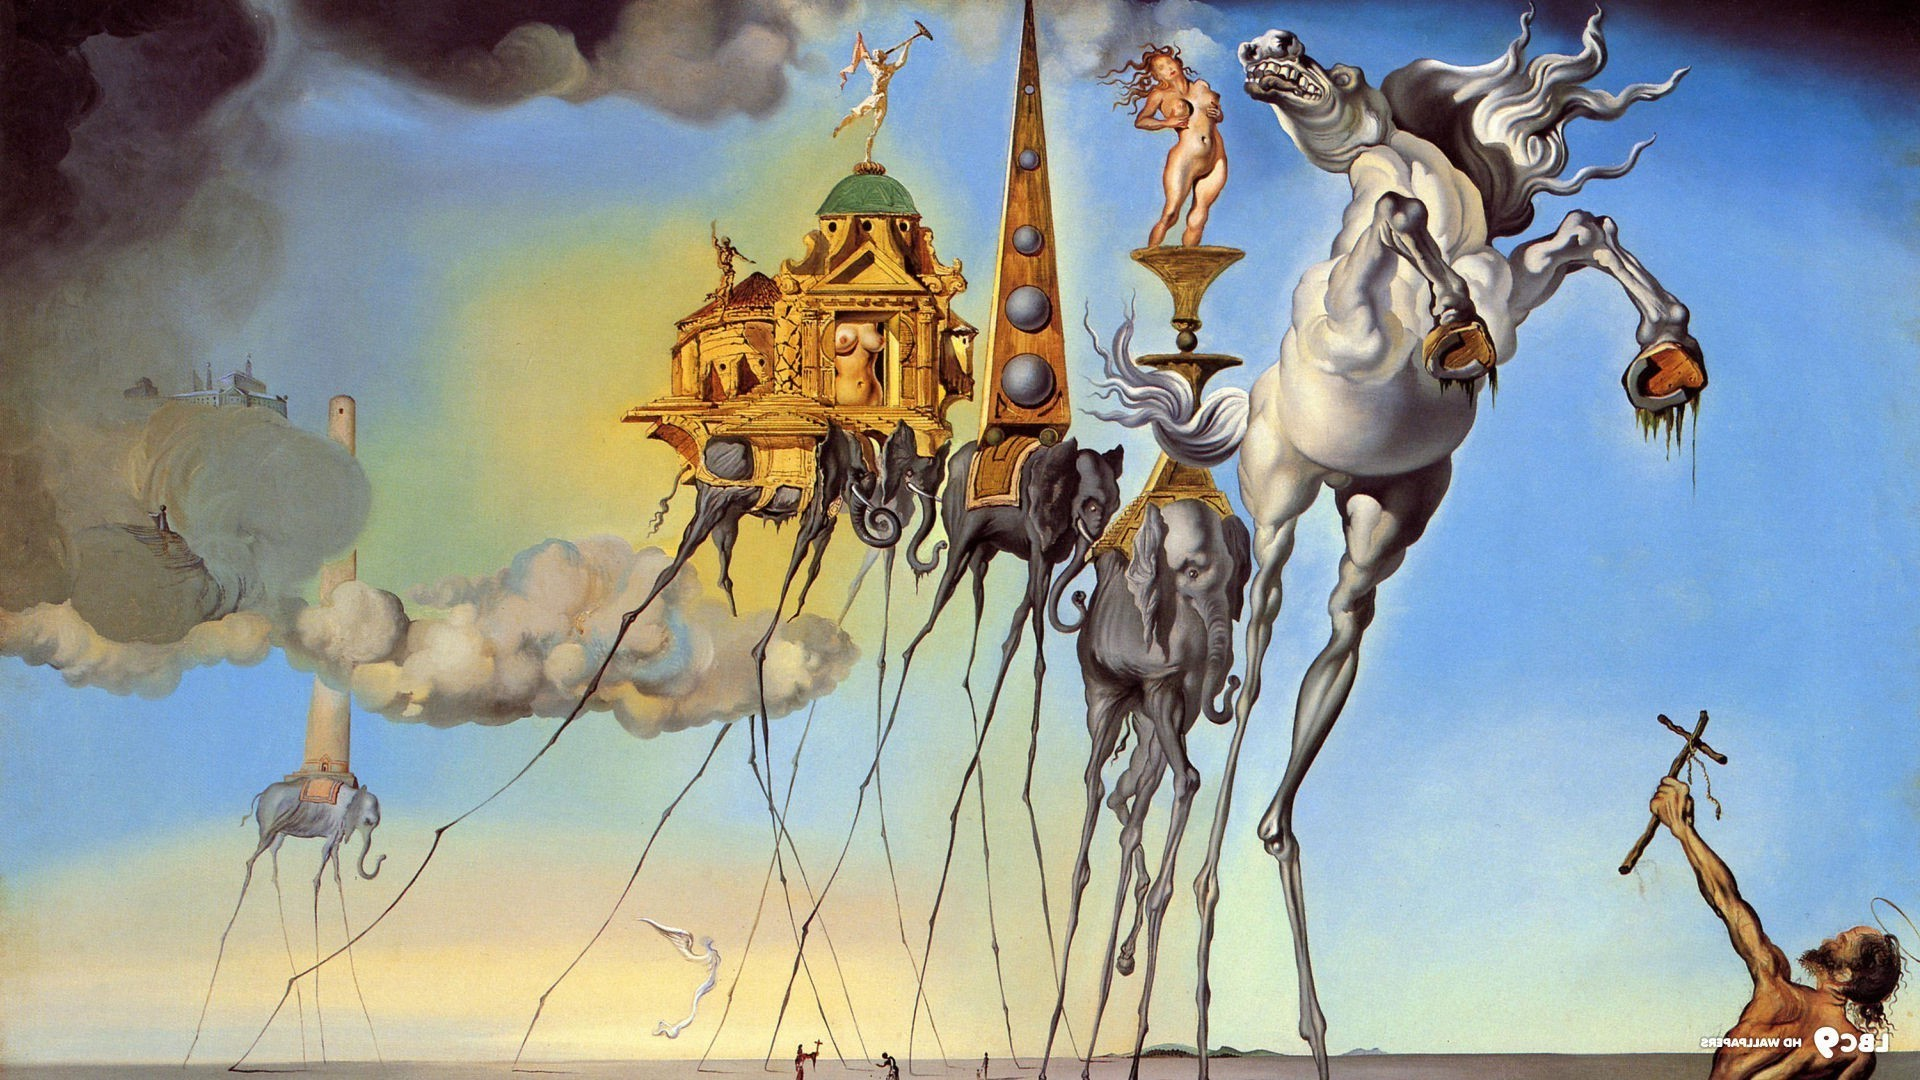 1920x1080 Salvador dali wallpaper inspirational artist dali paintings of salvador  dali wallpaper jpg  Salvador dali wallpaper